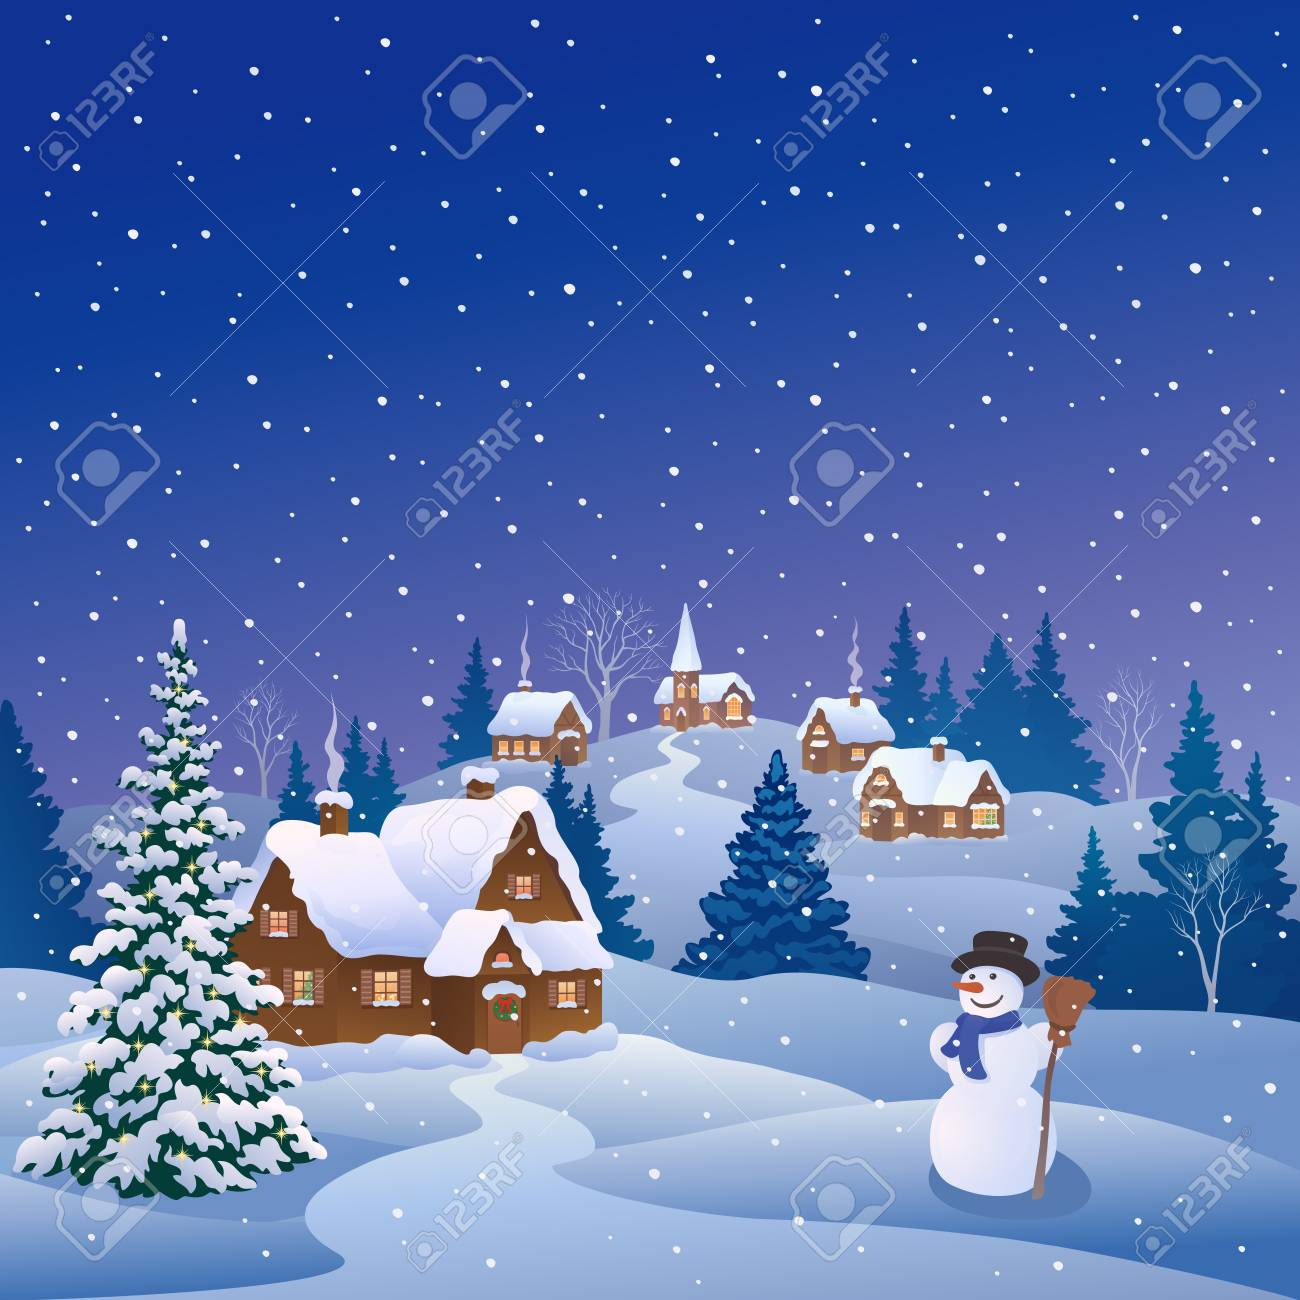 Snowing Christmas Tree.Vector Cartoon Drawing Of A Snowy Christmas Tree And A Cute Snowman